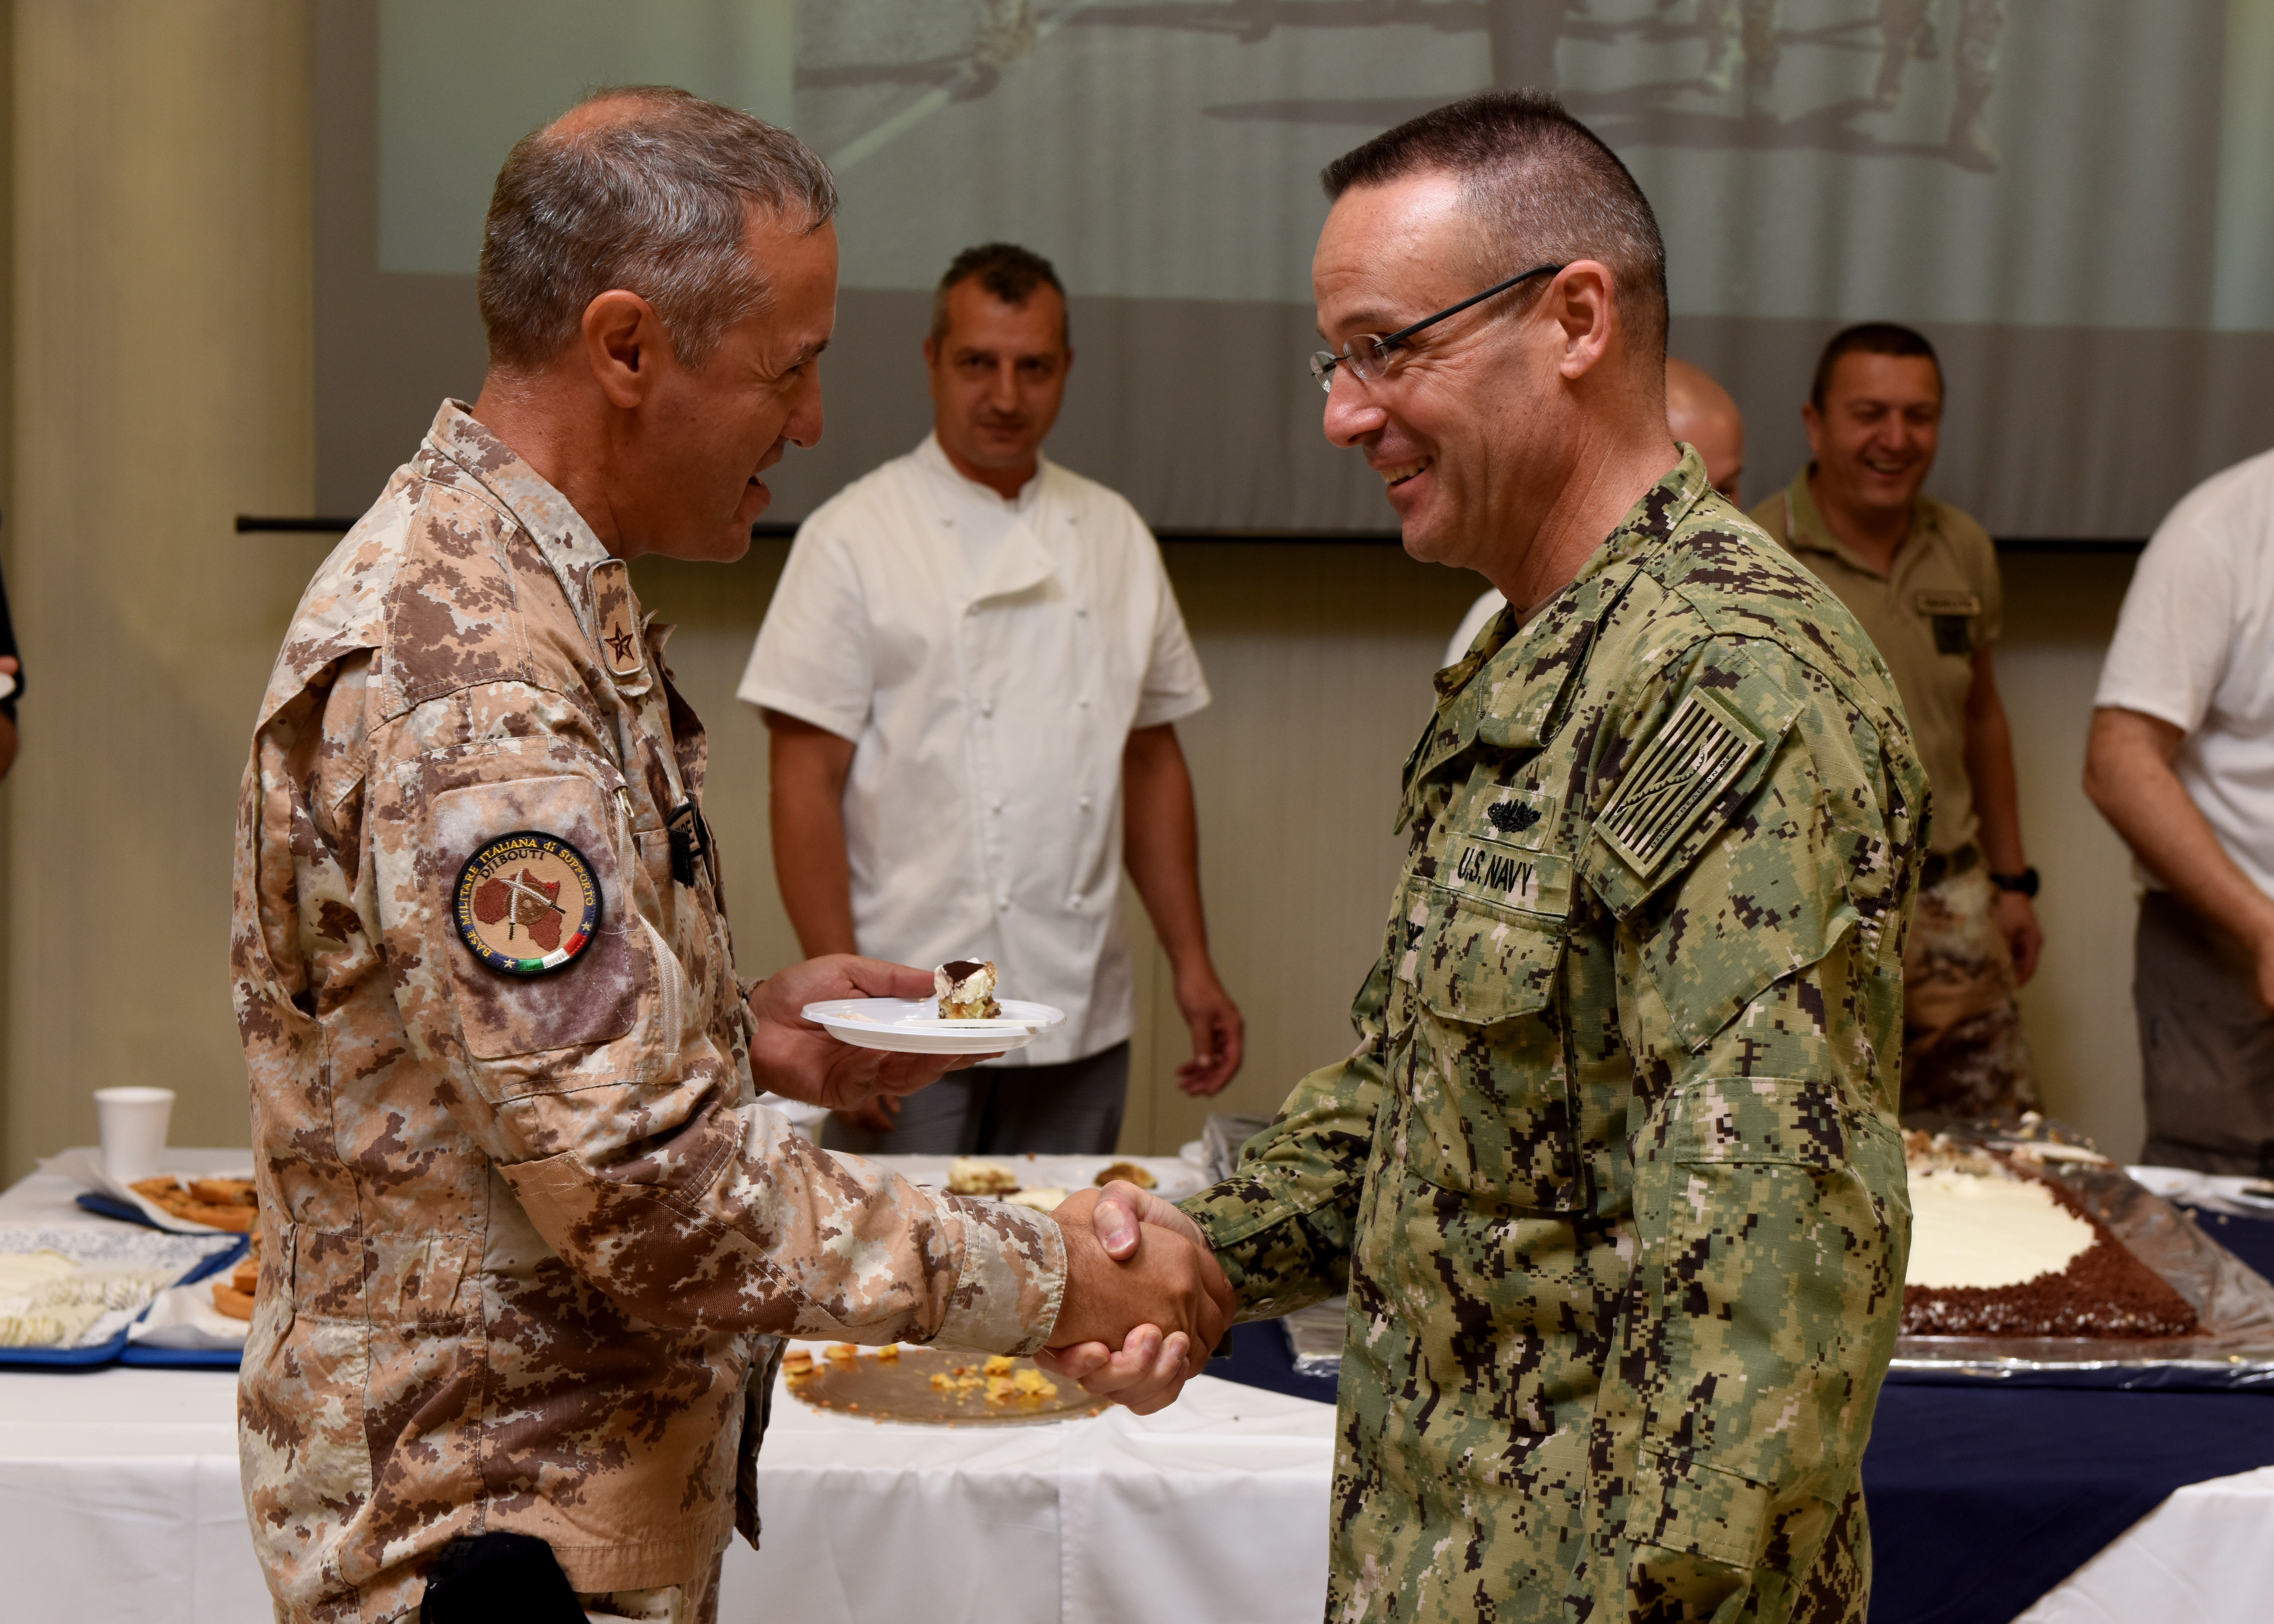 Italian navy Capt. Liborio Palombella, commander of the Italian National Military Support Base, Djibouti, shakes hands with U.S. Navy Capt. Thomas Wall, chief of staff of Combined Joint Task Force-Horn of Africa, during an anniversary ceremony at the Italian National Military Support Base, Feb. 19, 2019. Wall attended the ceremony, which celebrated the Italian base's fifth year in Djibouti, to show support for U.S. partner and coalition forces. (U.S. Air Force photo by Staff Sgt. Franklin R. Ramos)